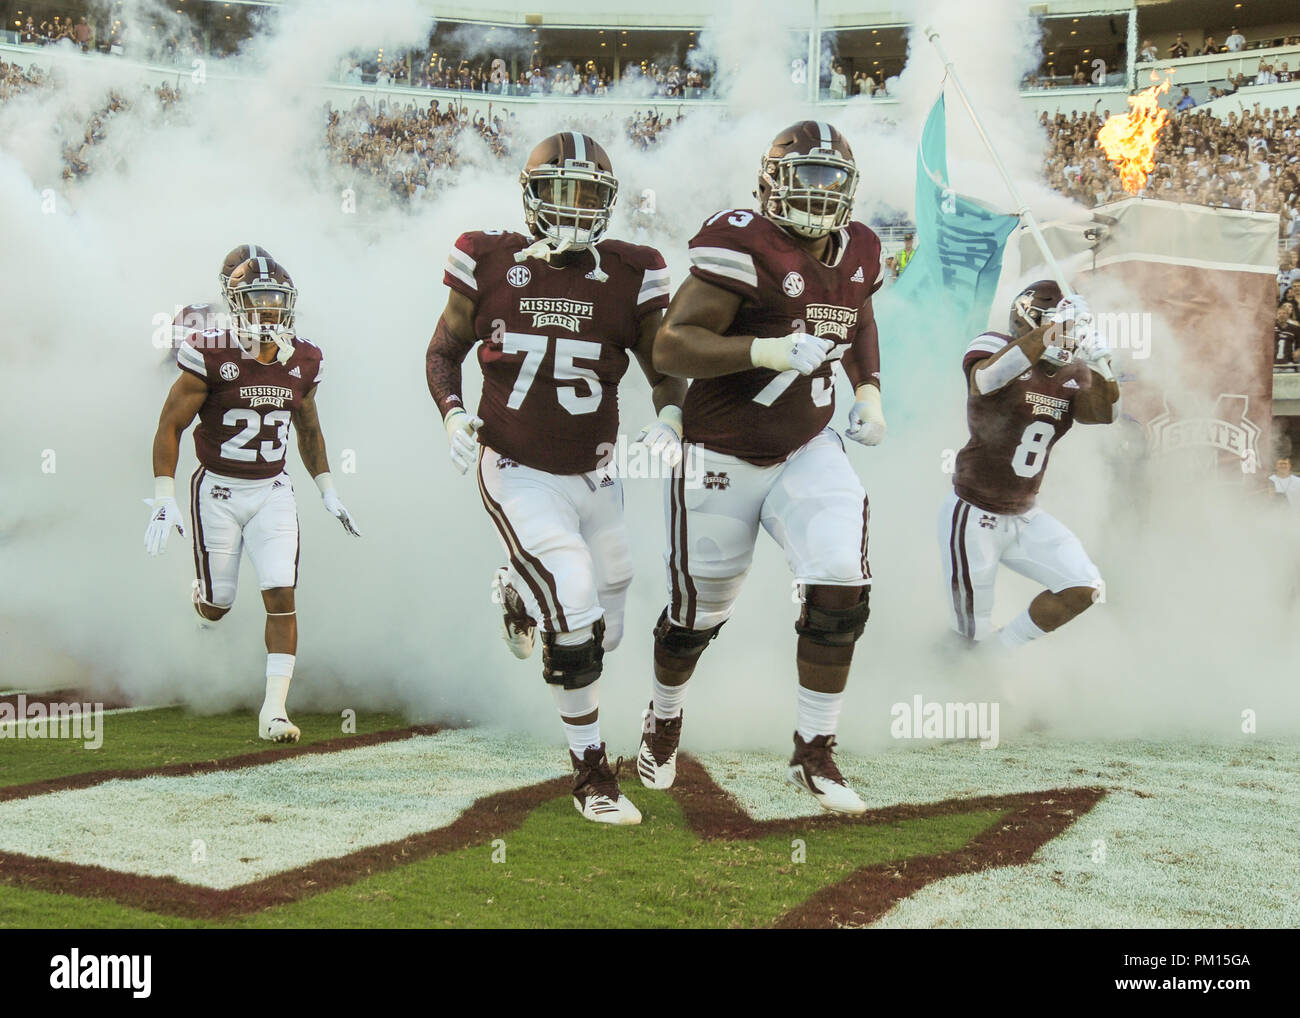 Starkville, MS, USA. 15th Sep, 2018. Mississippi State University Bulldogs football team members enter the field before the NCAA Division I match-up at Davis Wade Stadium in Starkville, MS. Mississippi State defeated Louisiana, 56-10. Kevin Langley/CSM/Alamy Live News - Stock Image